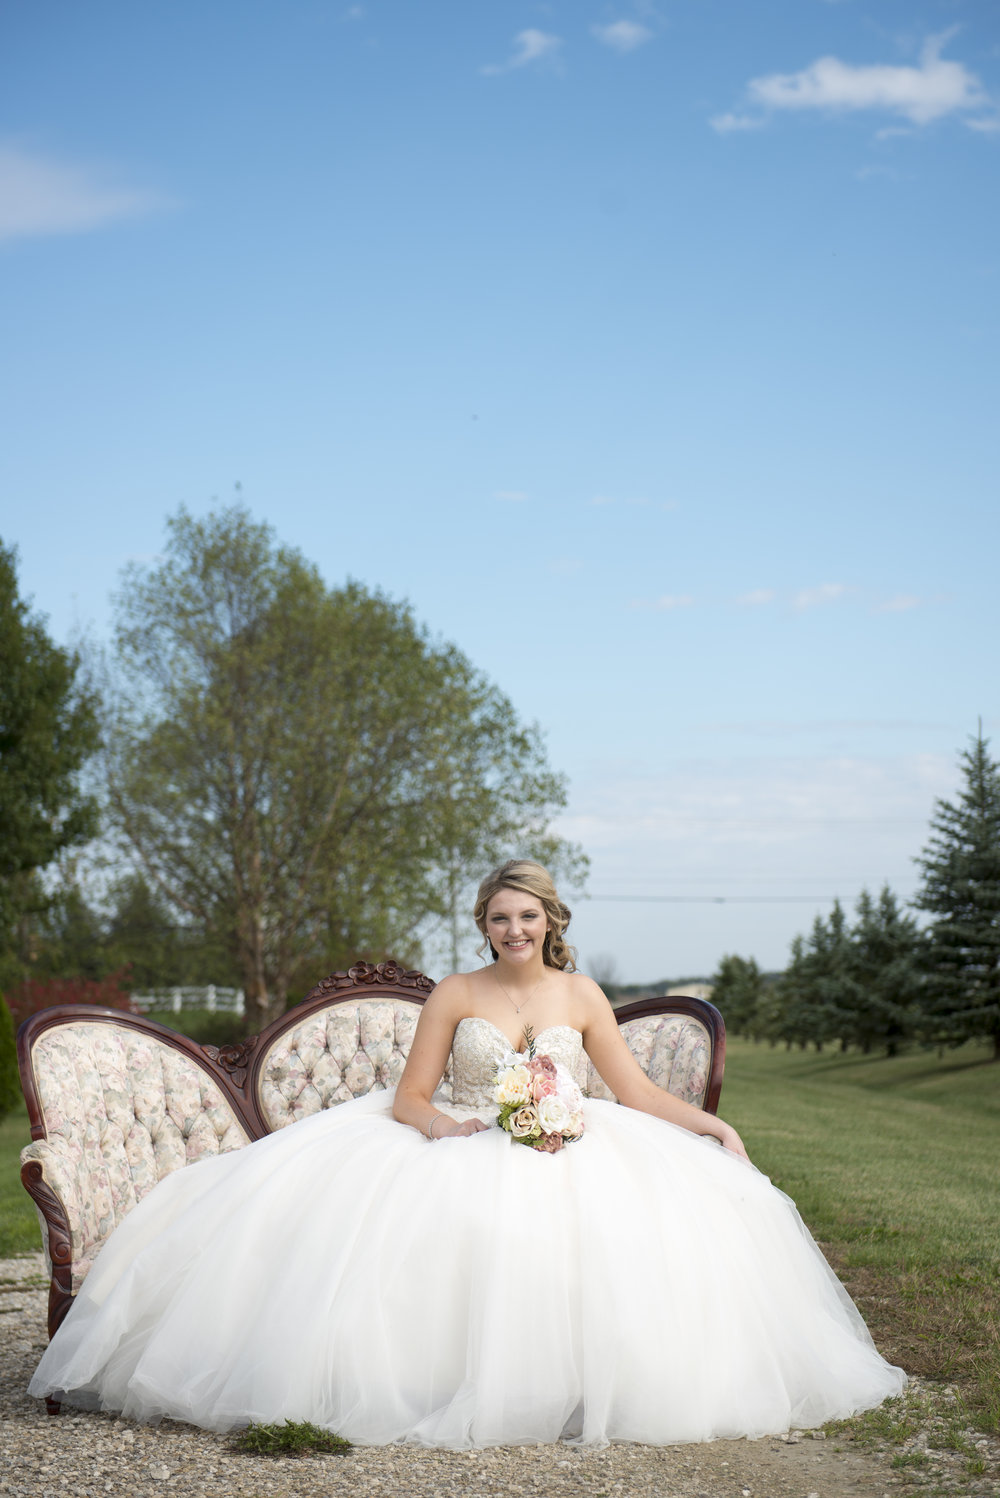 ABBEY & JOSH | PRAIRIE STONE FARM WEDDING | RAYMOND, OH — Bear ...